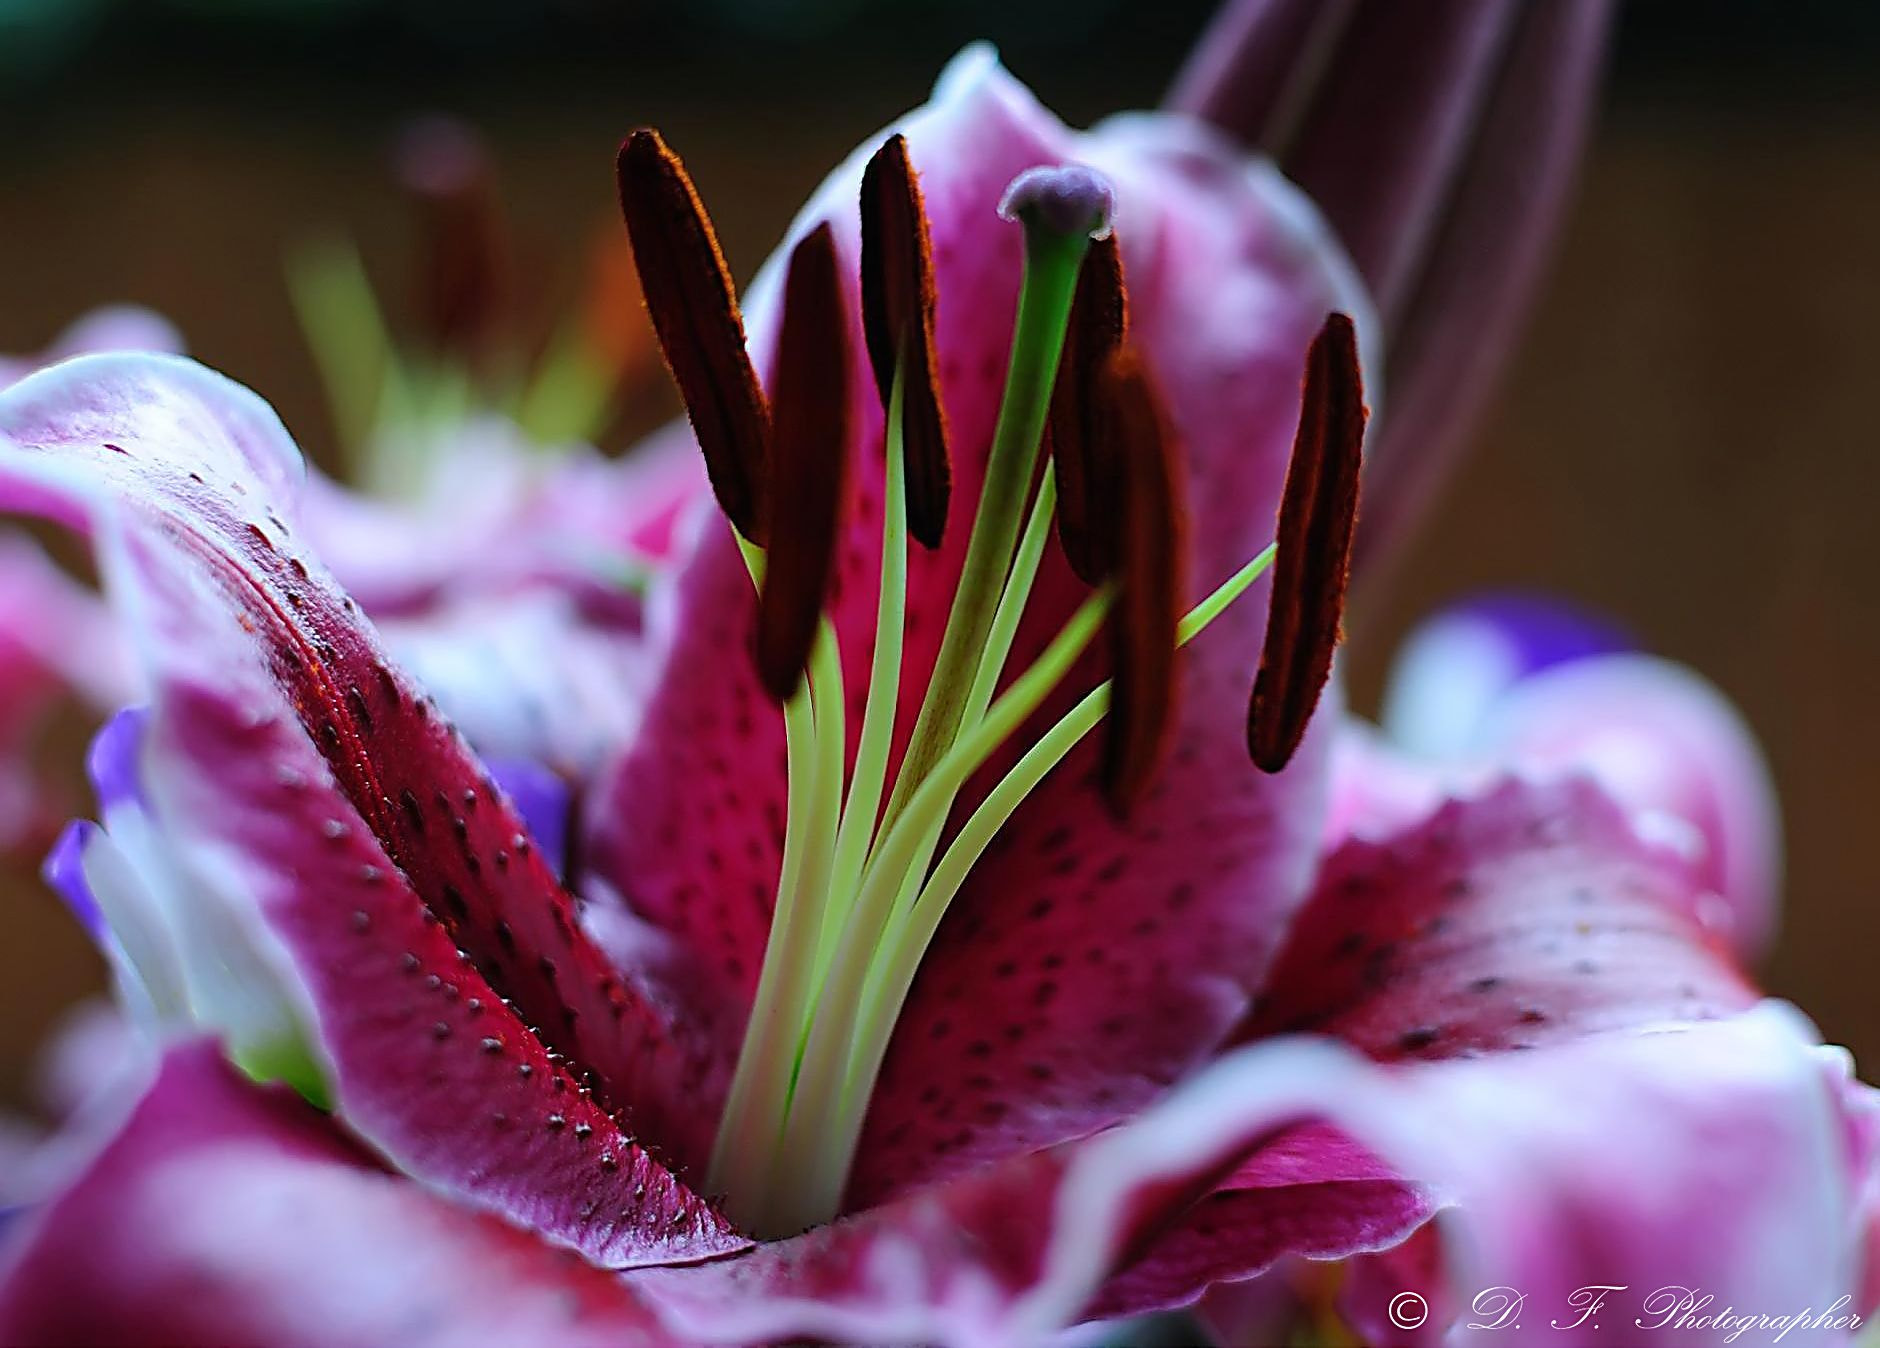 Photograph Lilium by Daniele Forestiere on 500px